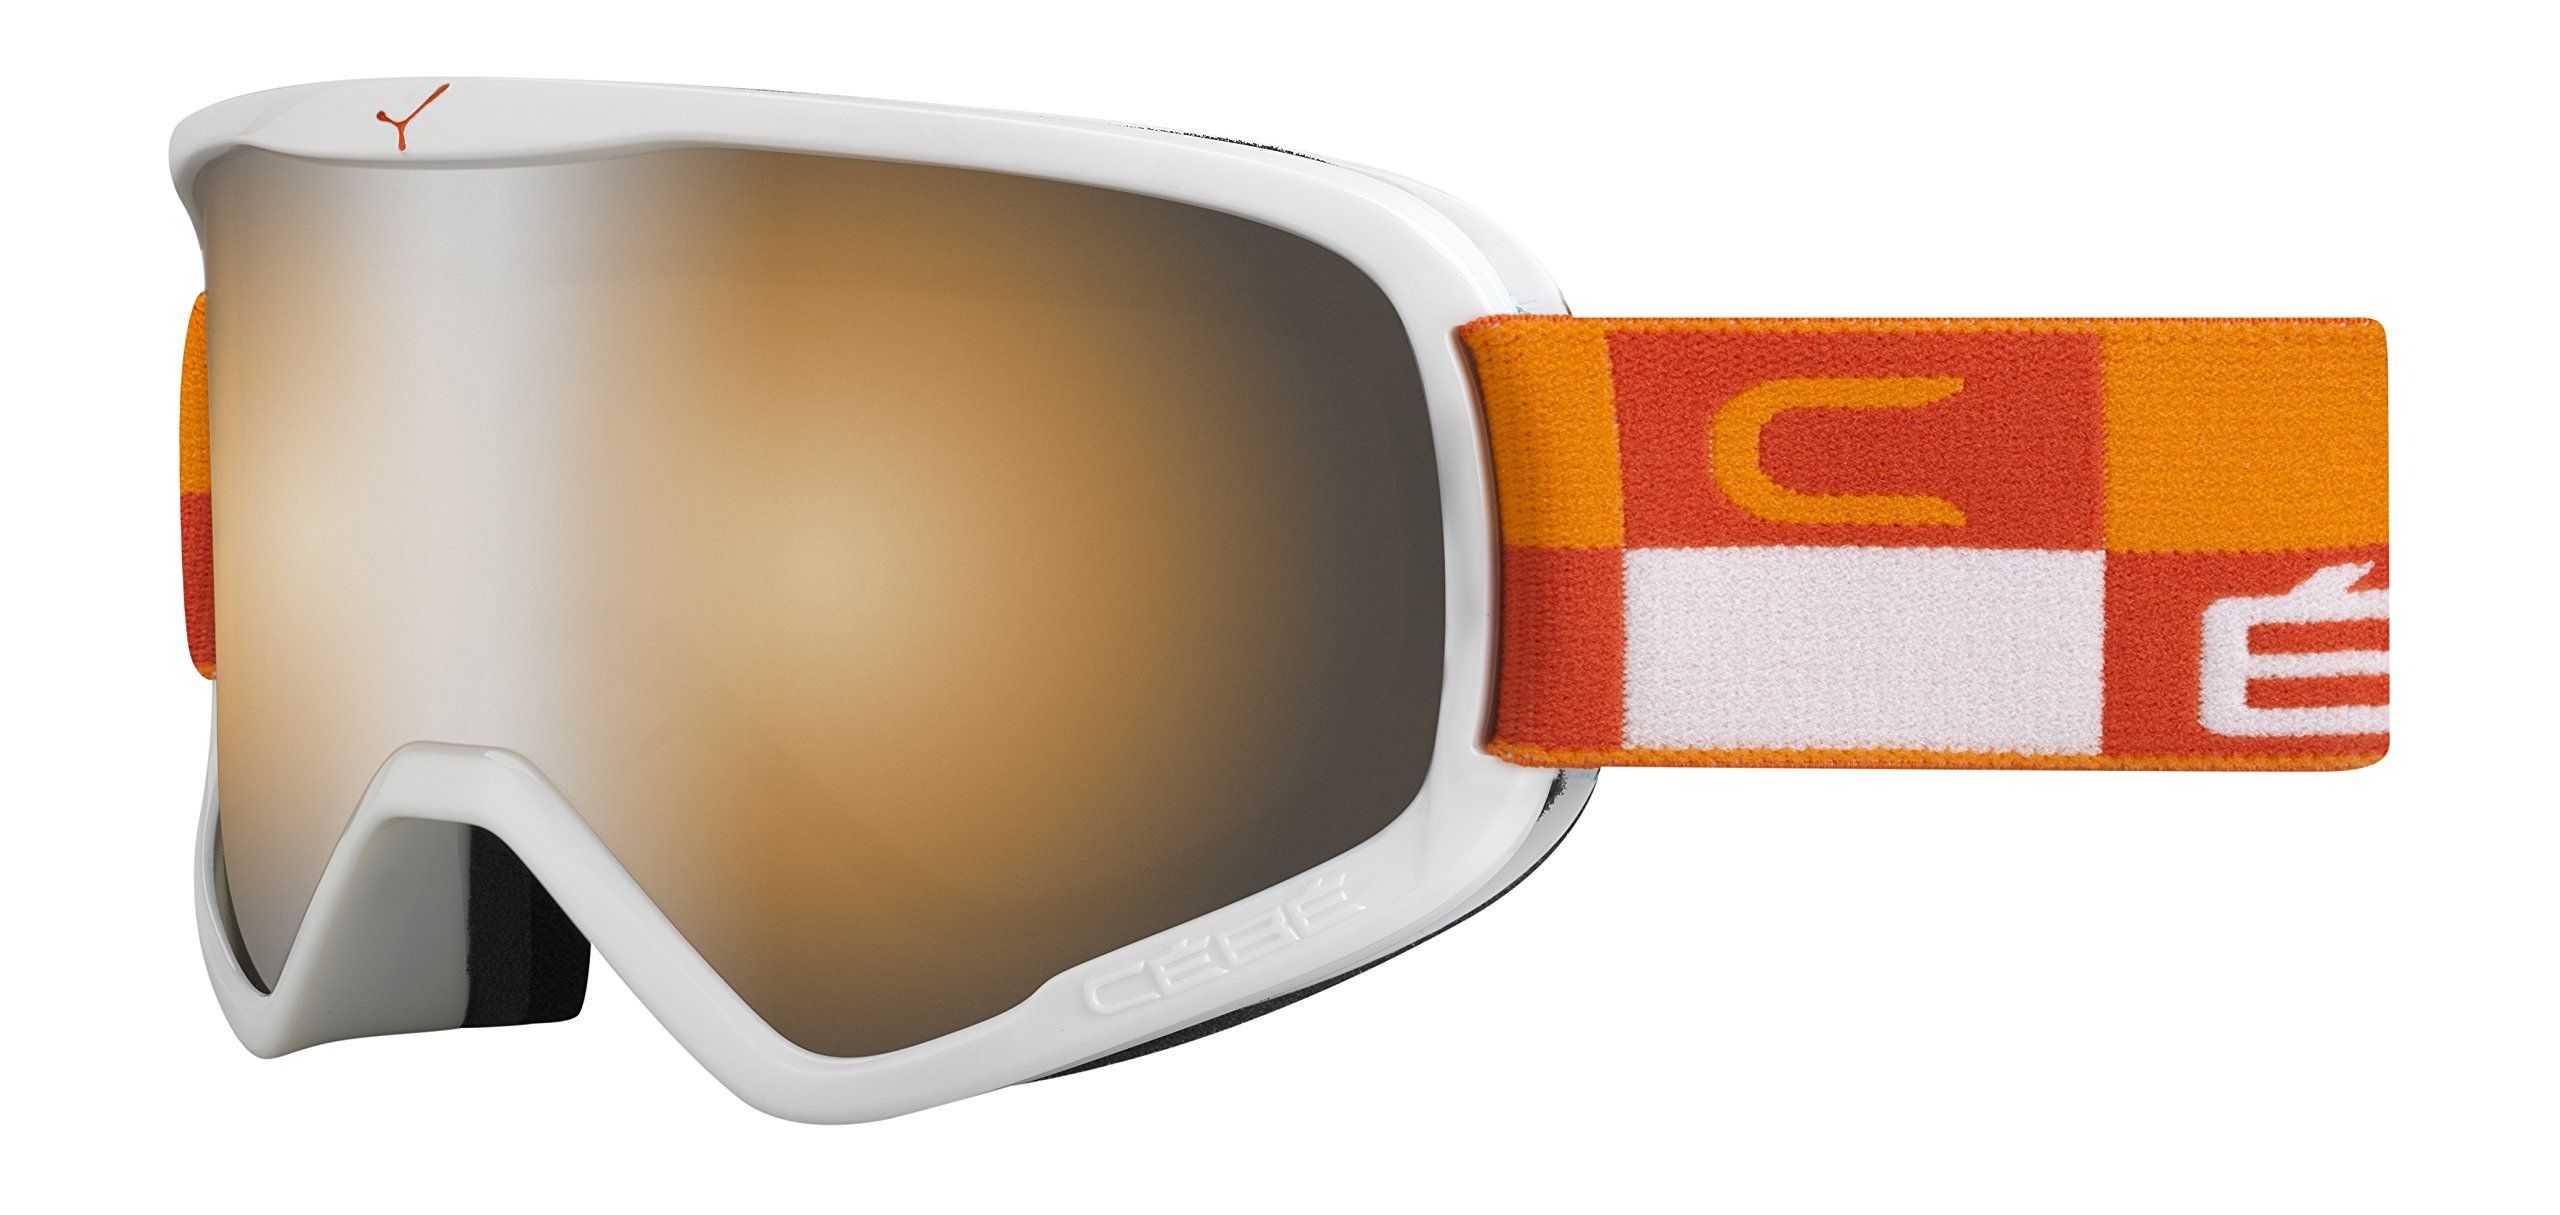 Cébé Skibrille Striker Chequered Flash Mirror, Weiß/Orange, L, CBG51